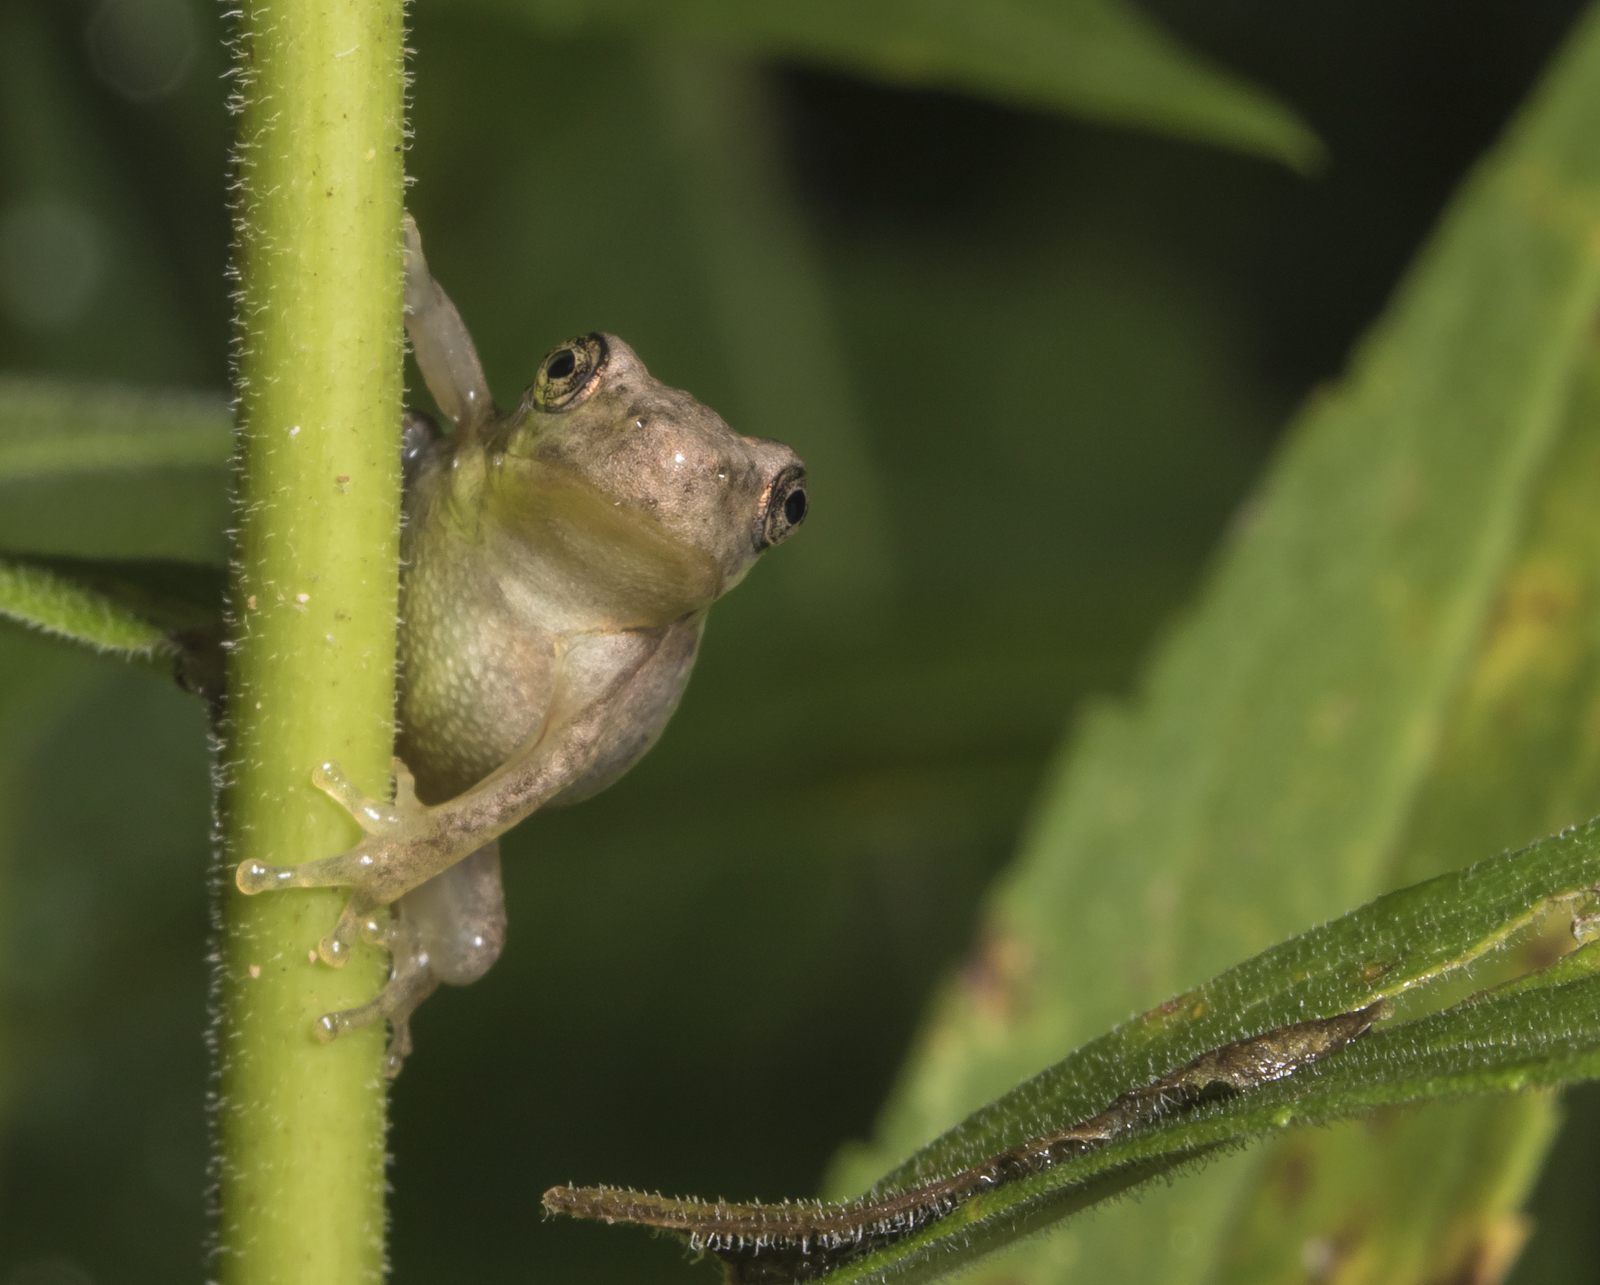 copes gray treefrog froglet  looking at camera